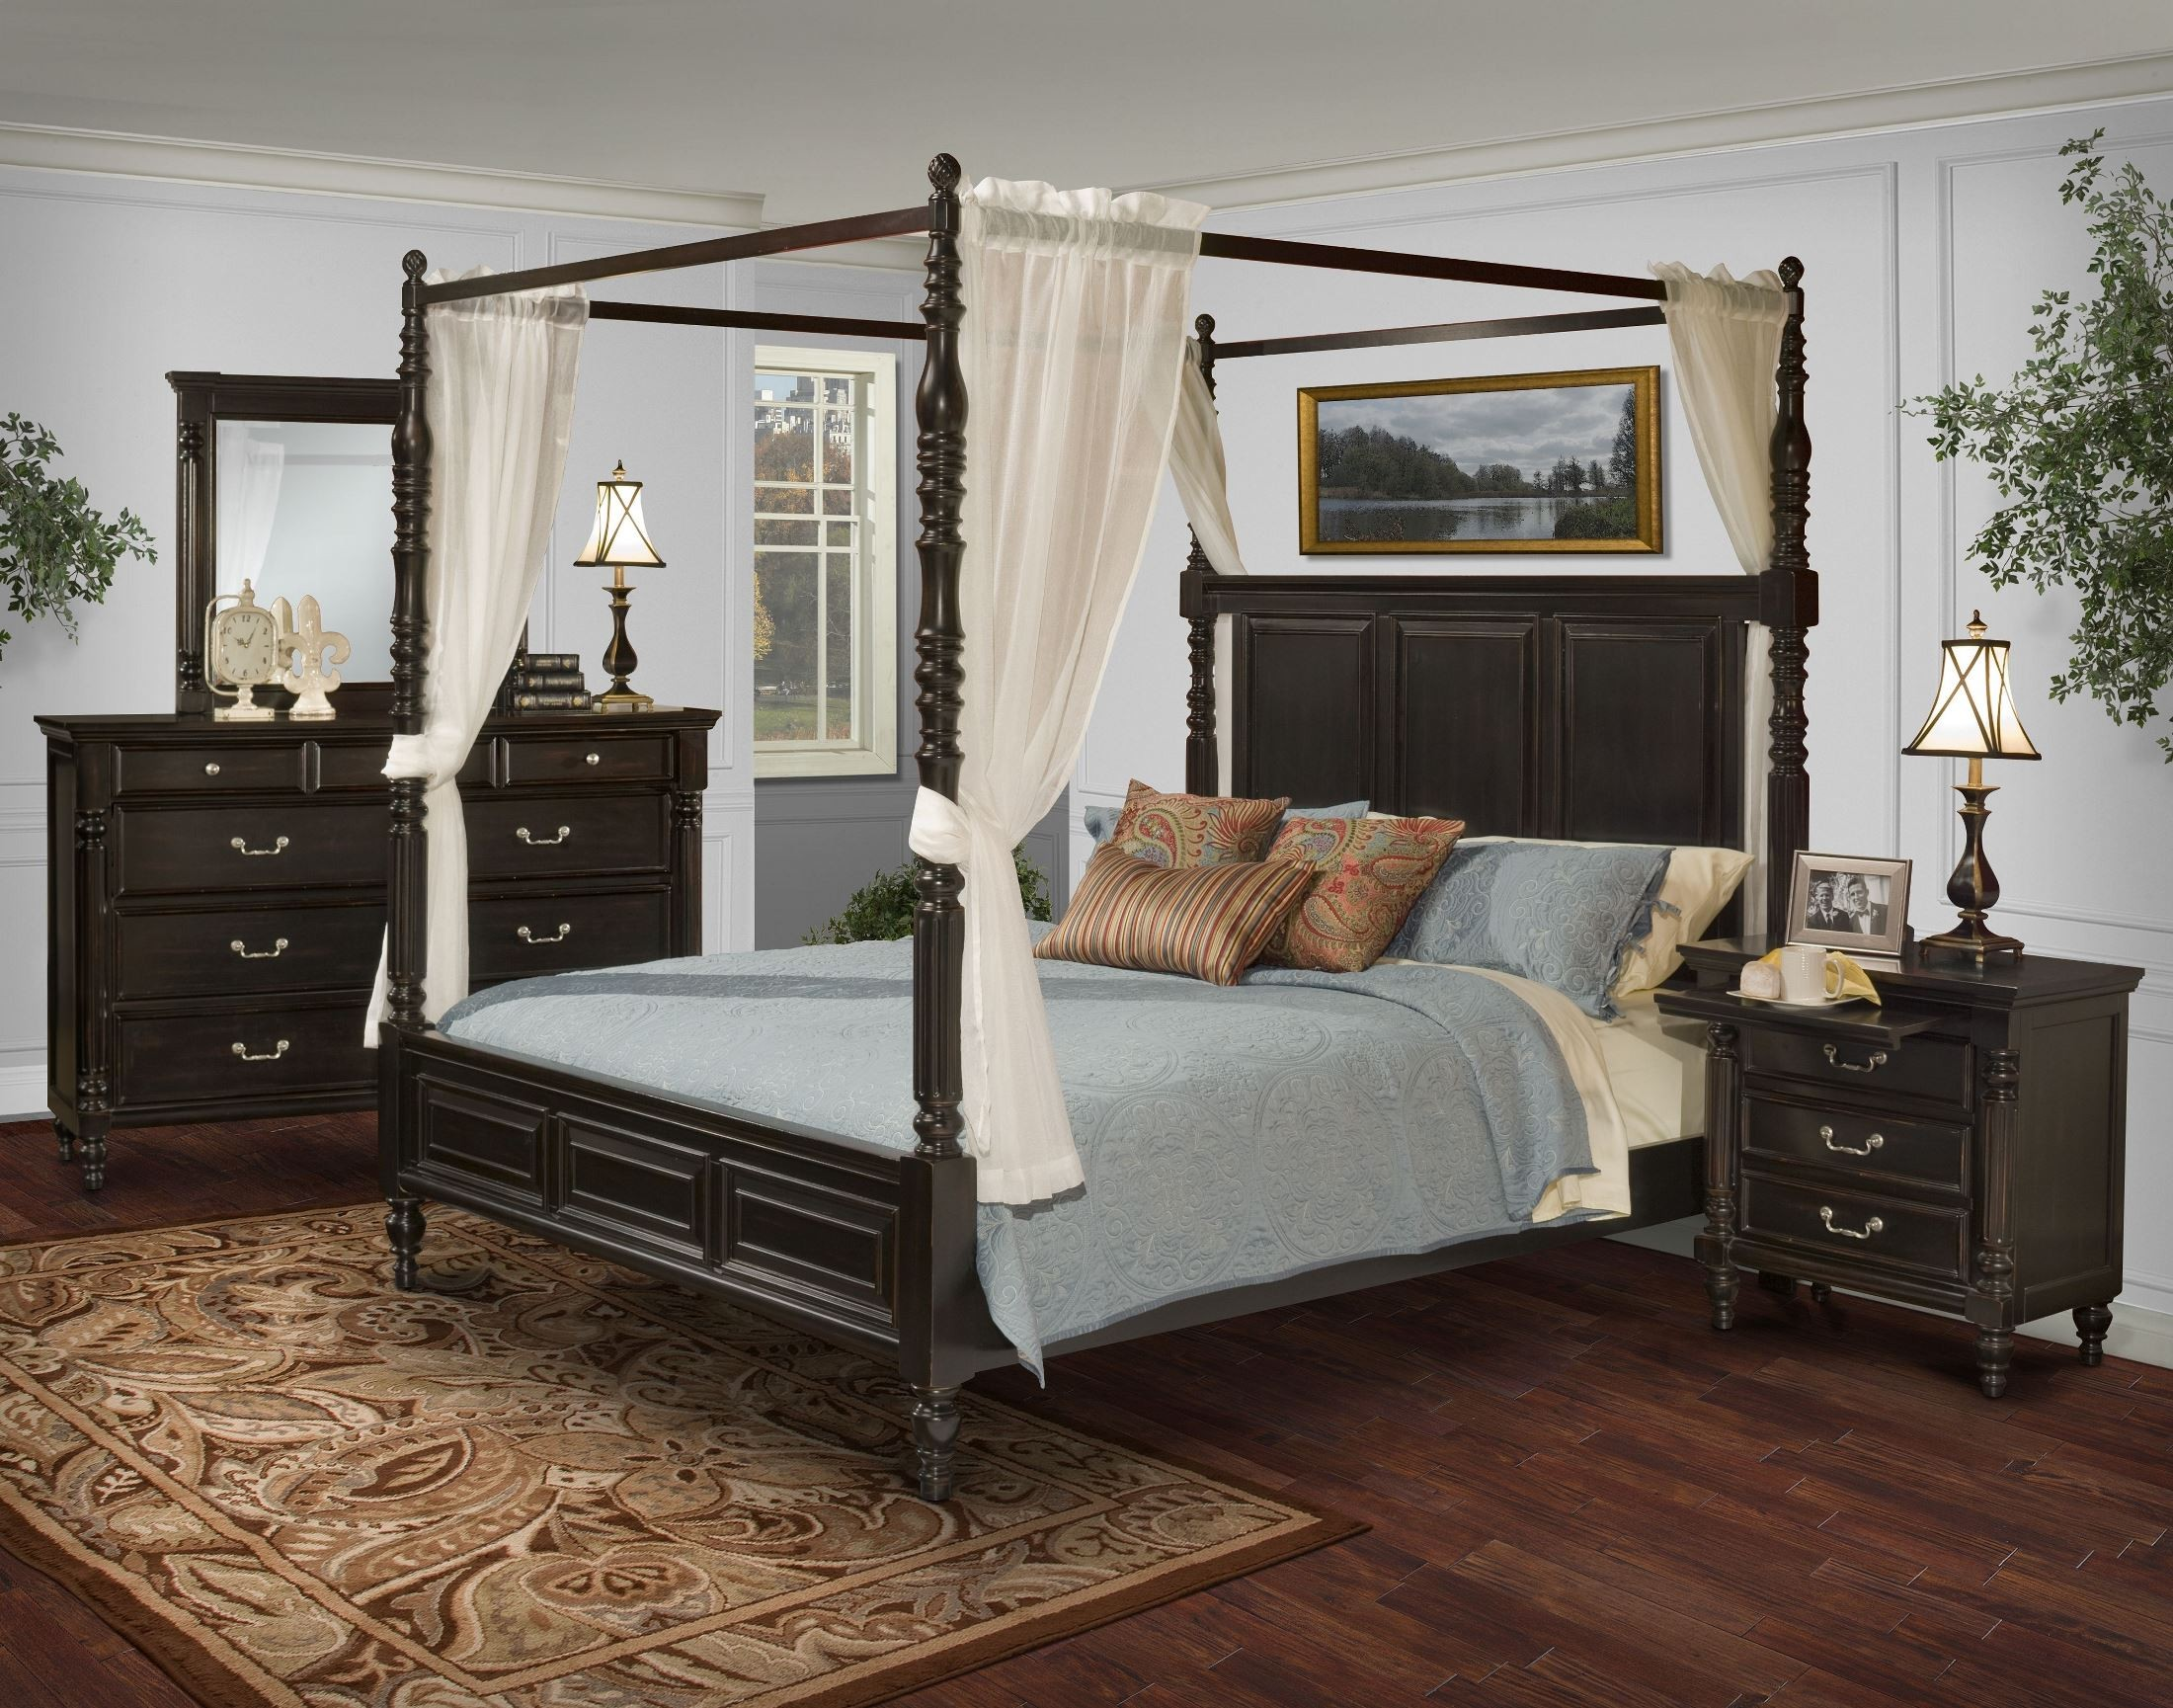 Martinique Rubbed Black Canopy Bedroom Set With Drapes From New Classics 00 222 311 331